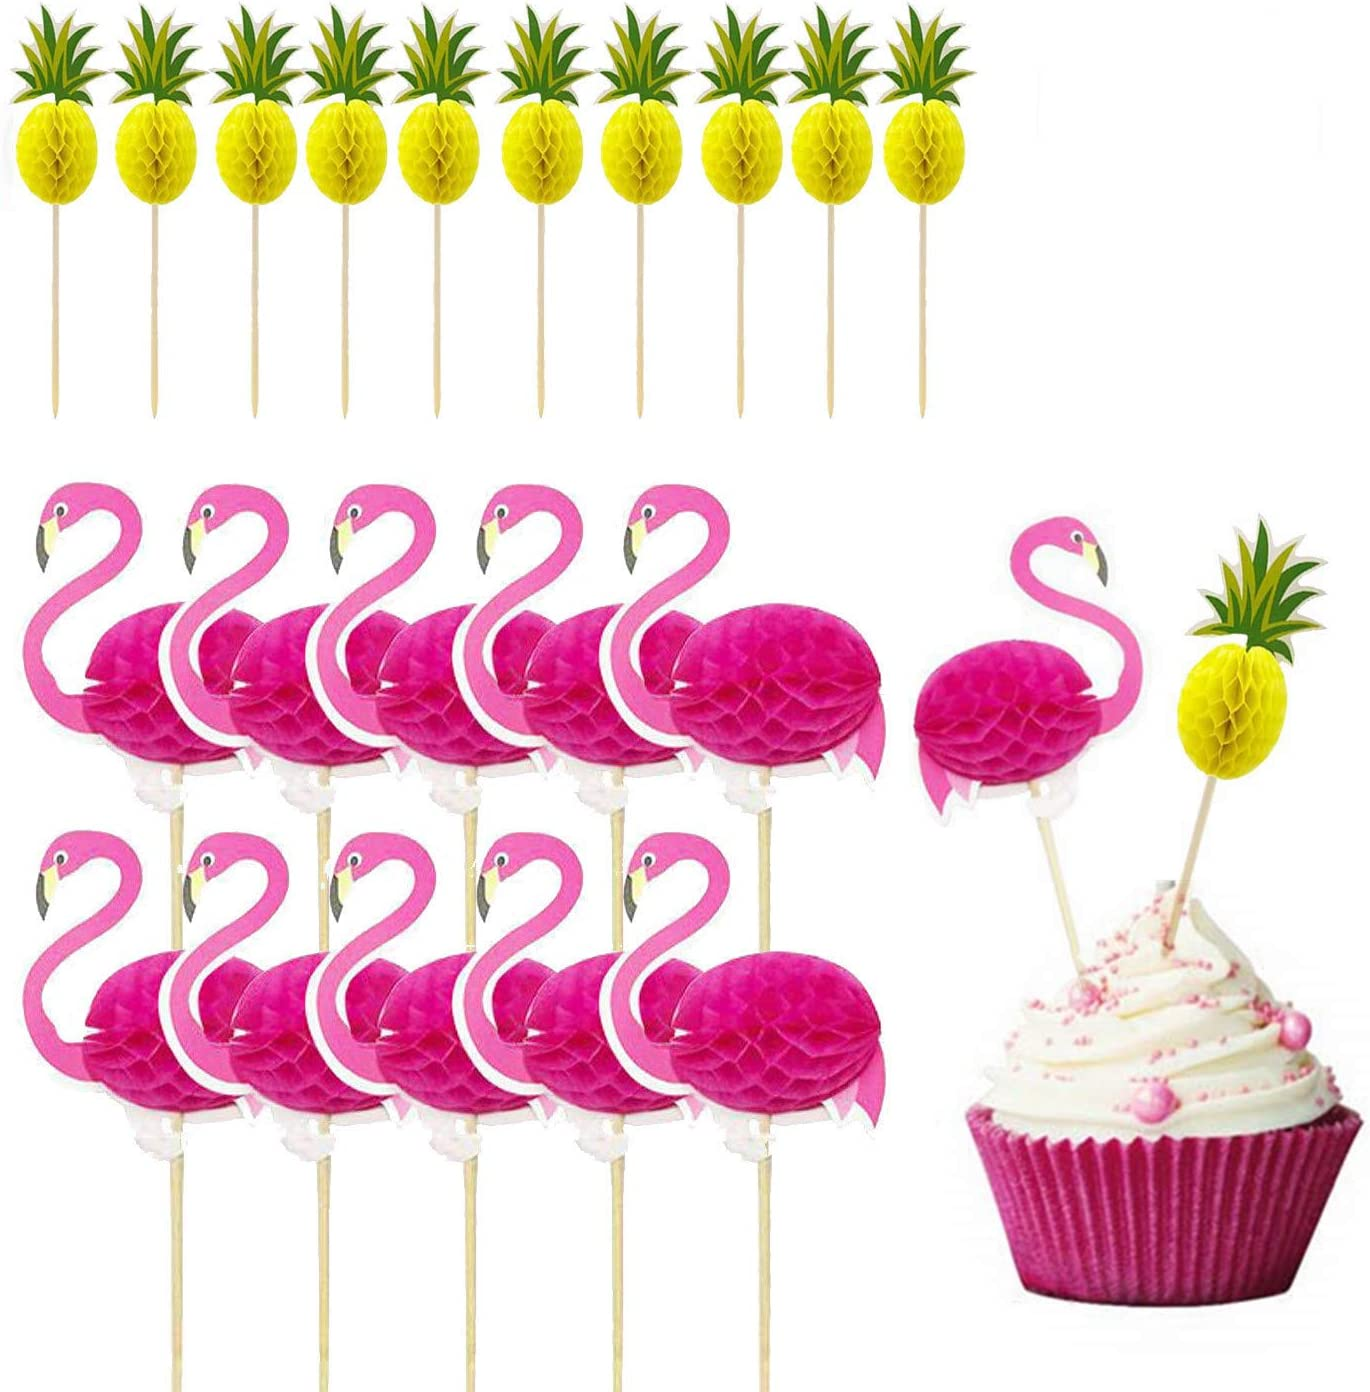 Hasken 60 Pack Flamingo and Pineapple Cupcakes Toppers Tropical Hawaiian Cake Toppers Picks for Birthday Parties Cake Food Decoration Supplies